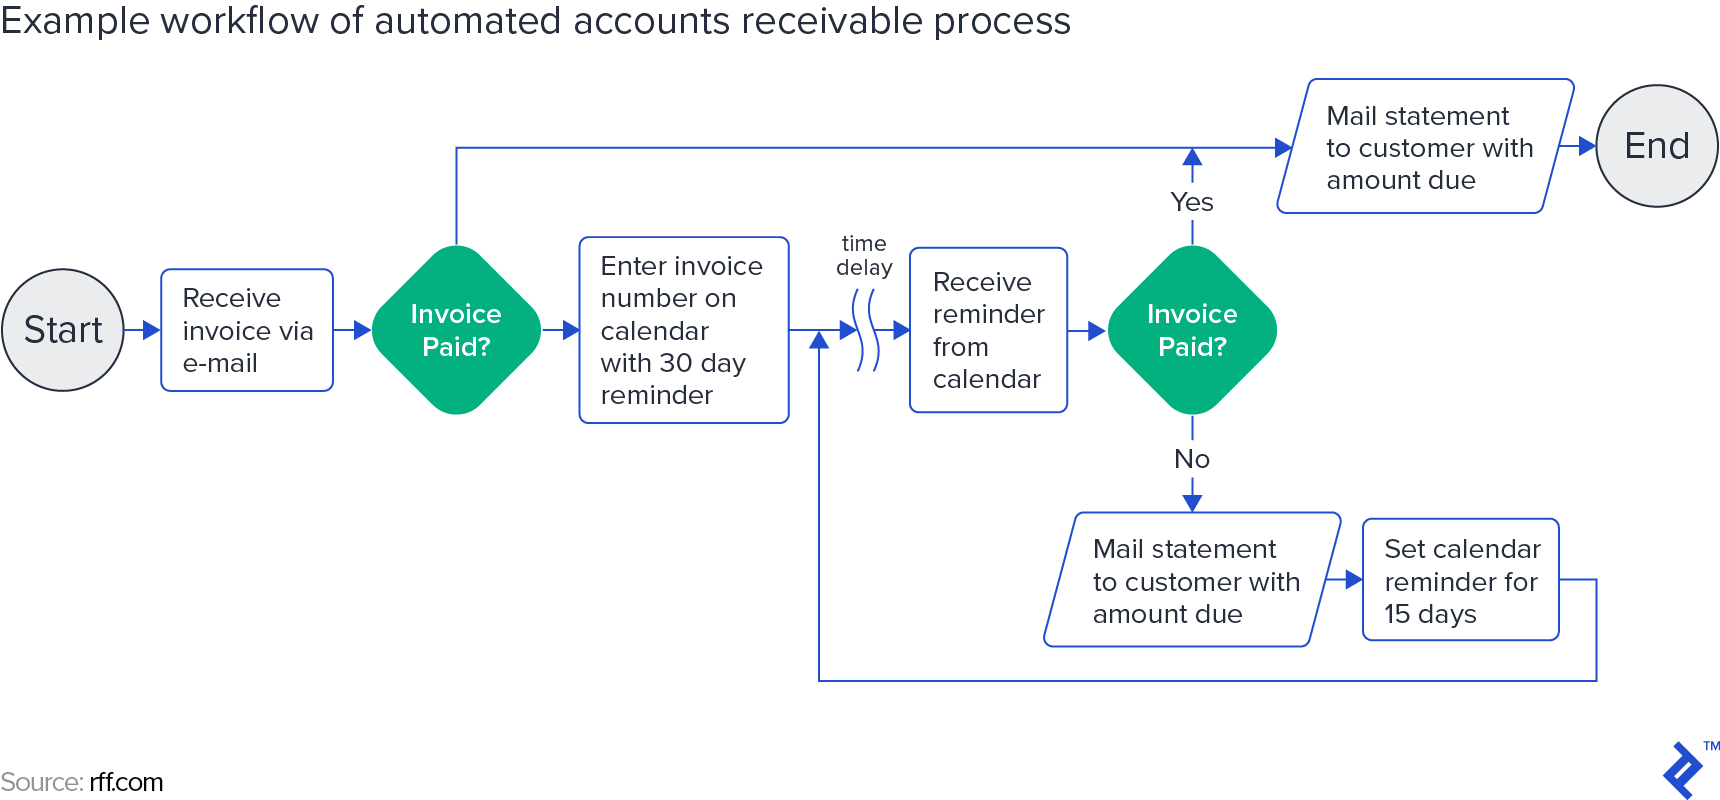 Example workflow of an automated accounts receivable process - Source: rff.com